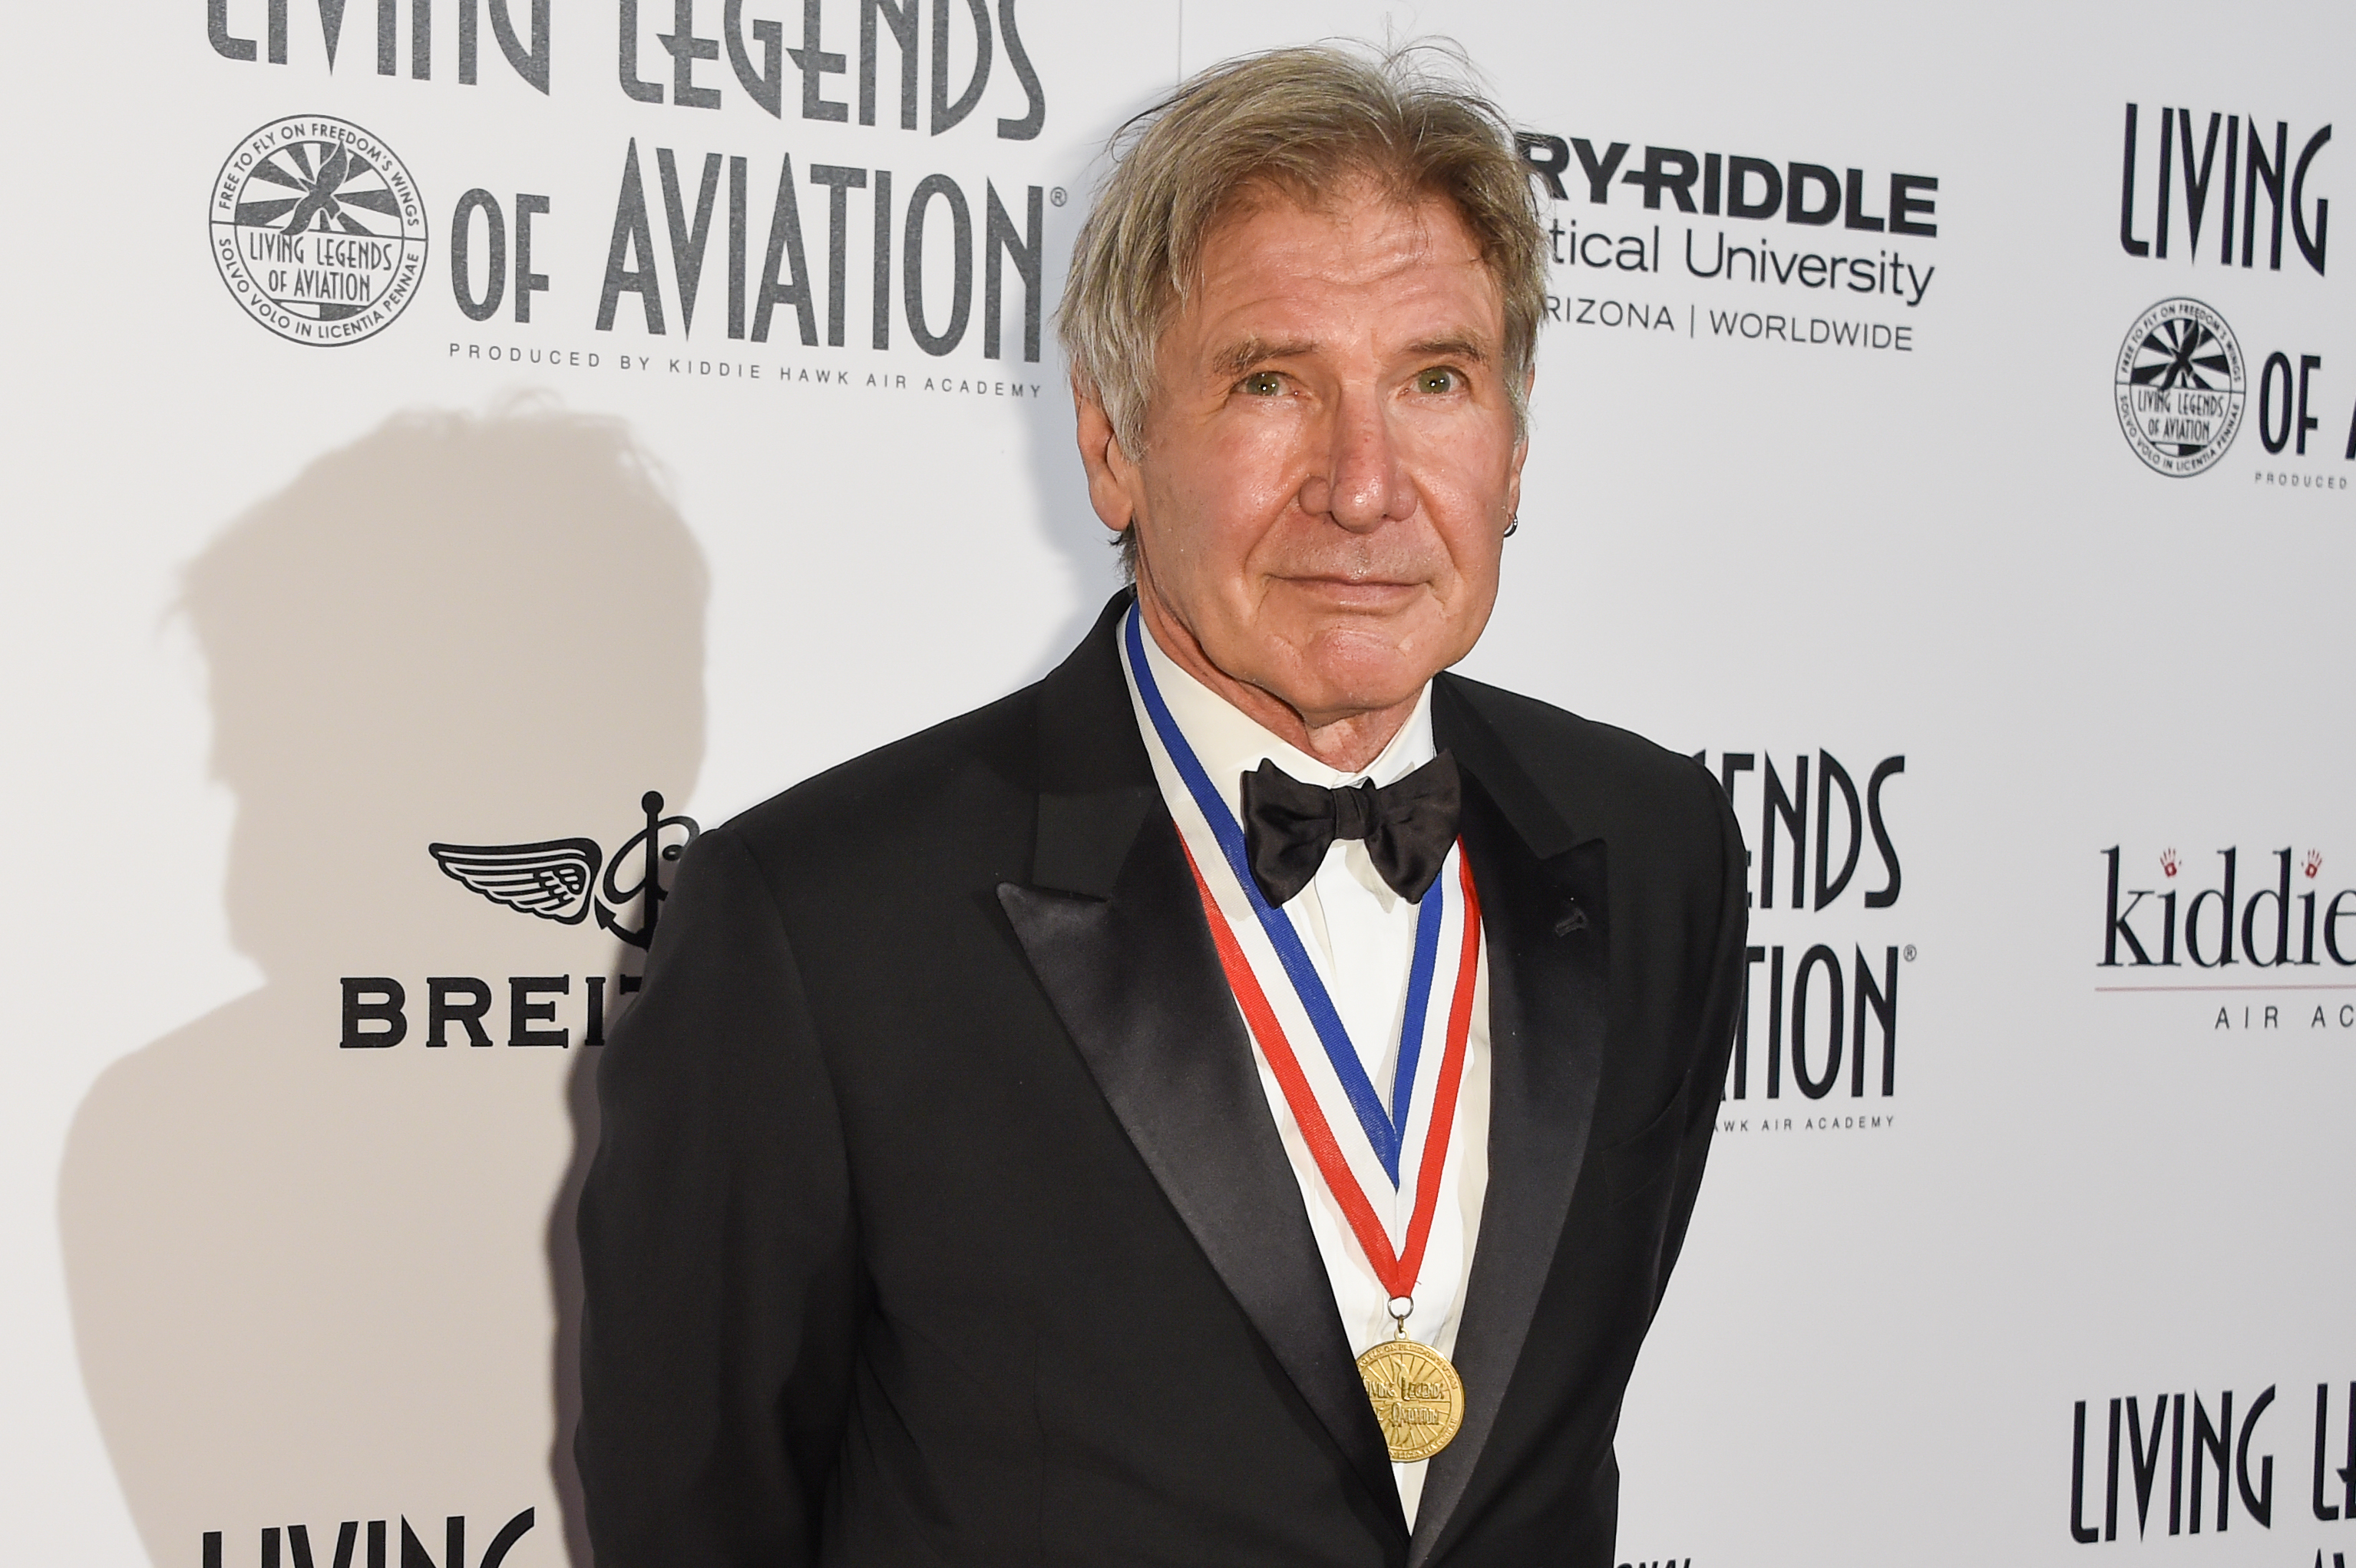 Harrison Ford attends the 12th Annual Living Legends of Aviation Awards at The Beverly Hilton Hotel on Friday, Jan 16, 2015, in Los Angeles